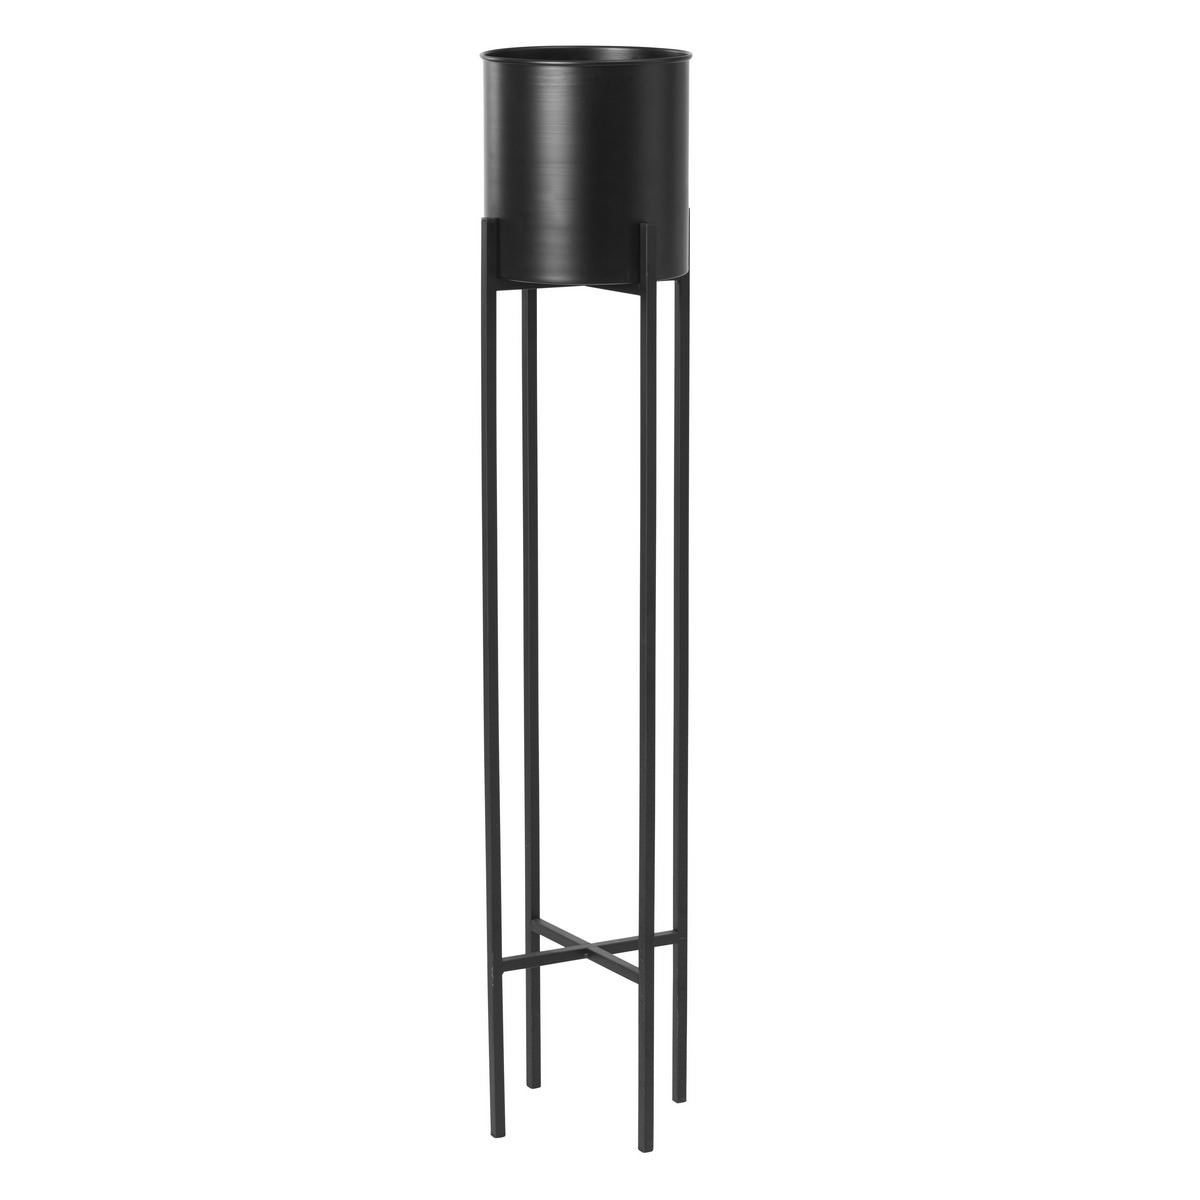 Herbet Metal Plant Pot On Stand, Large, Black